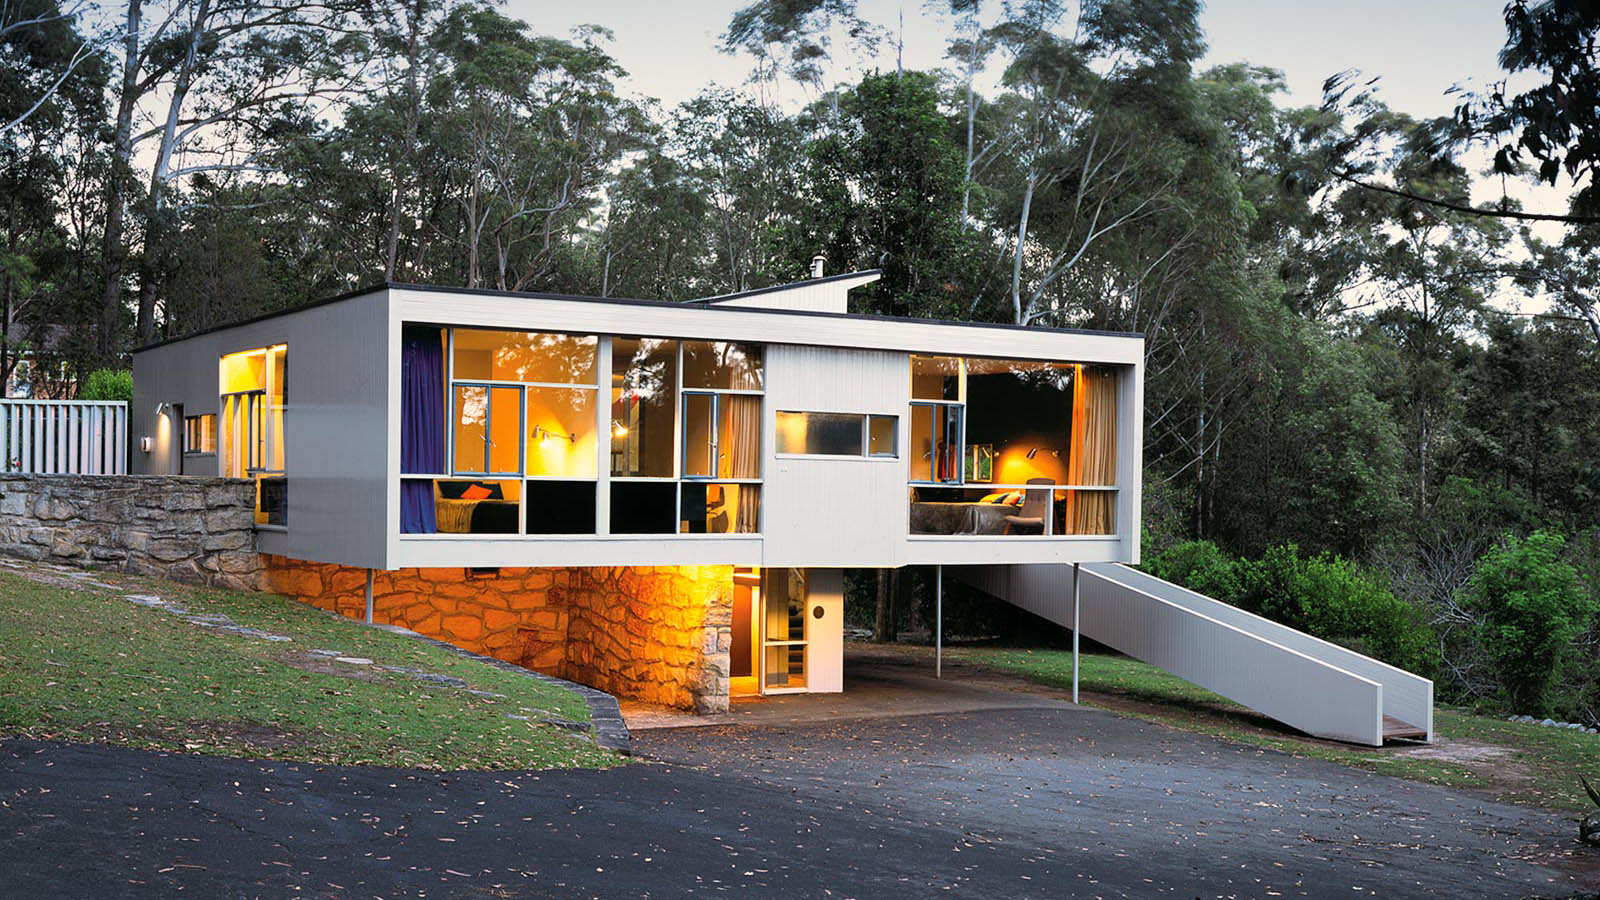 Rose Seidler House in bush landscape, internals are well lit with gold lights